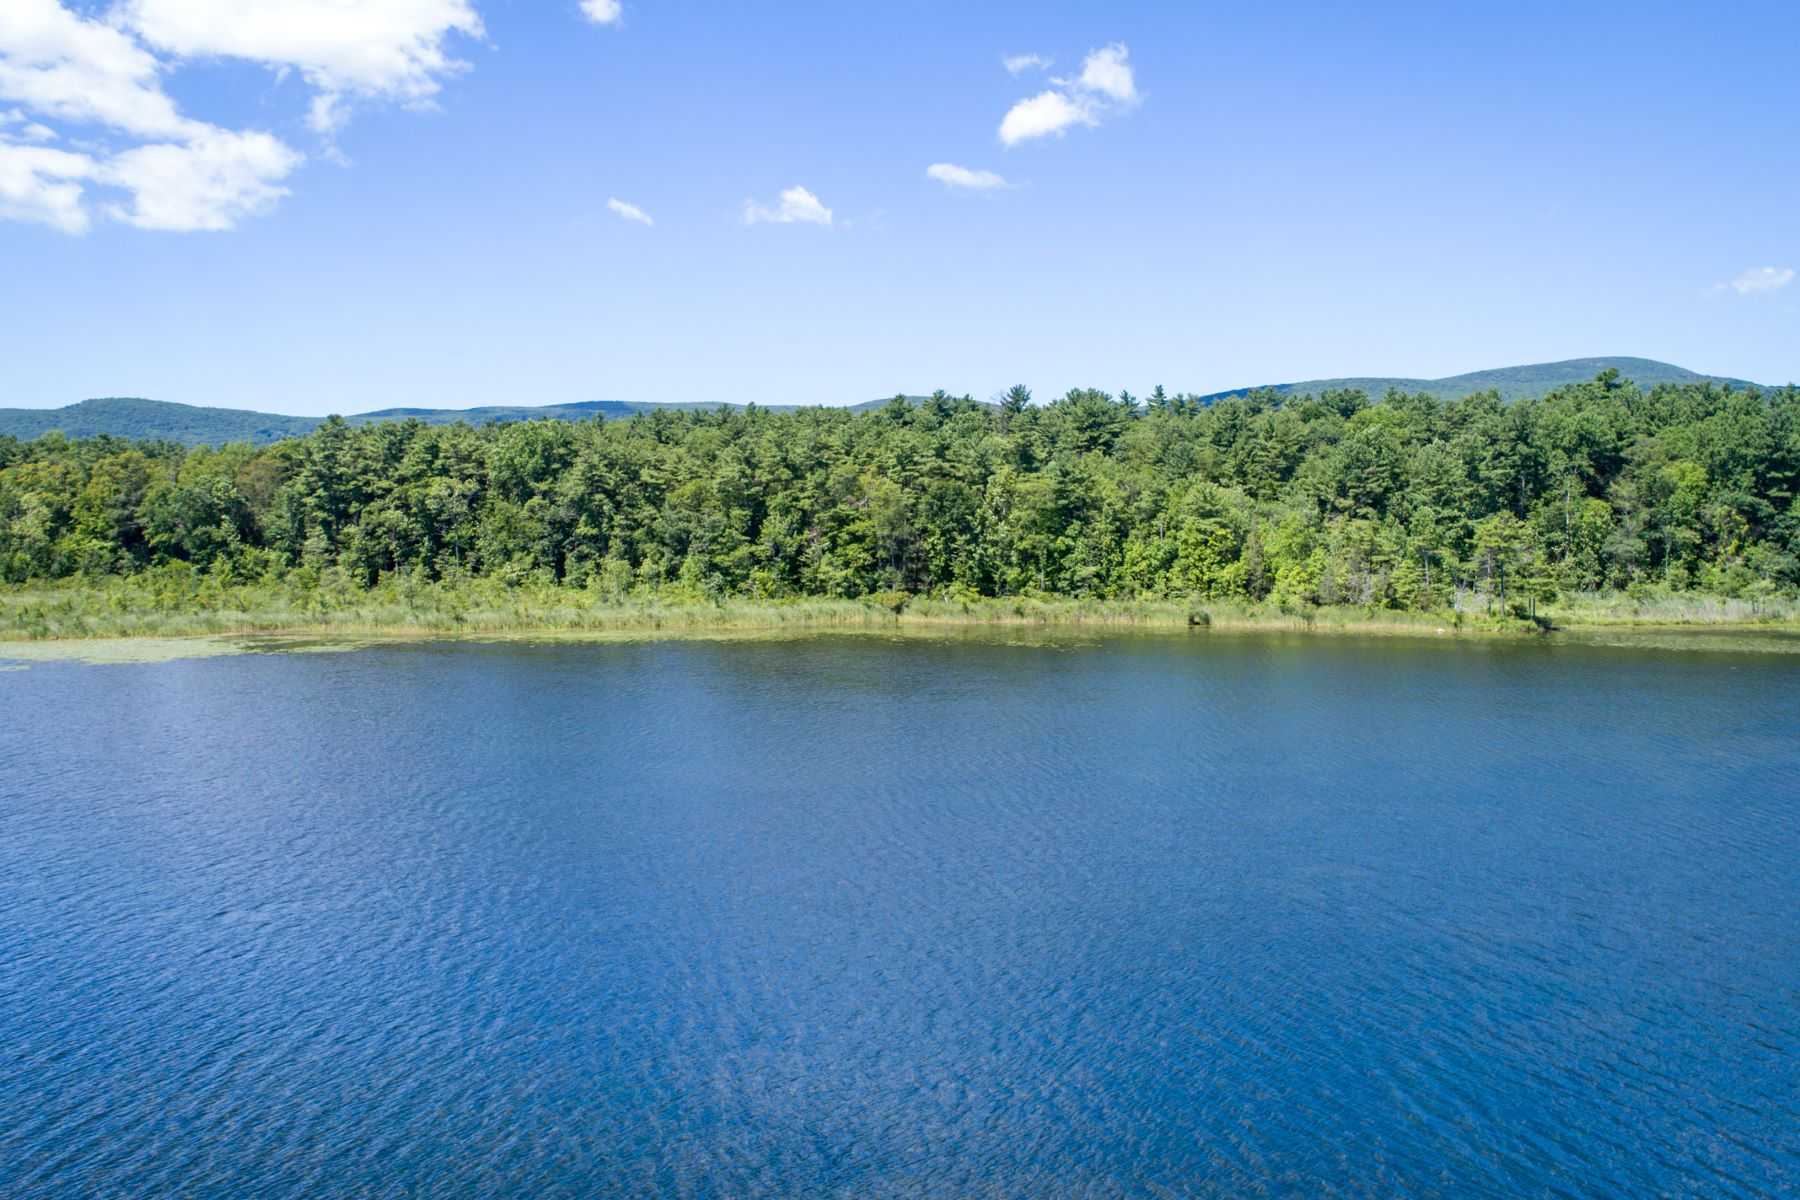 Land for Sale at BUILDING LOTS DIRECTLY ON TWIN LAKES 77 Washinee Heights Road Salisbury, Connecticut 06068 United States